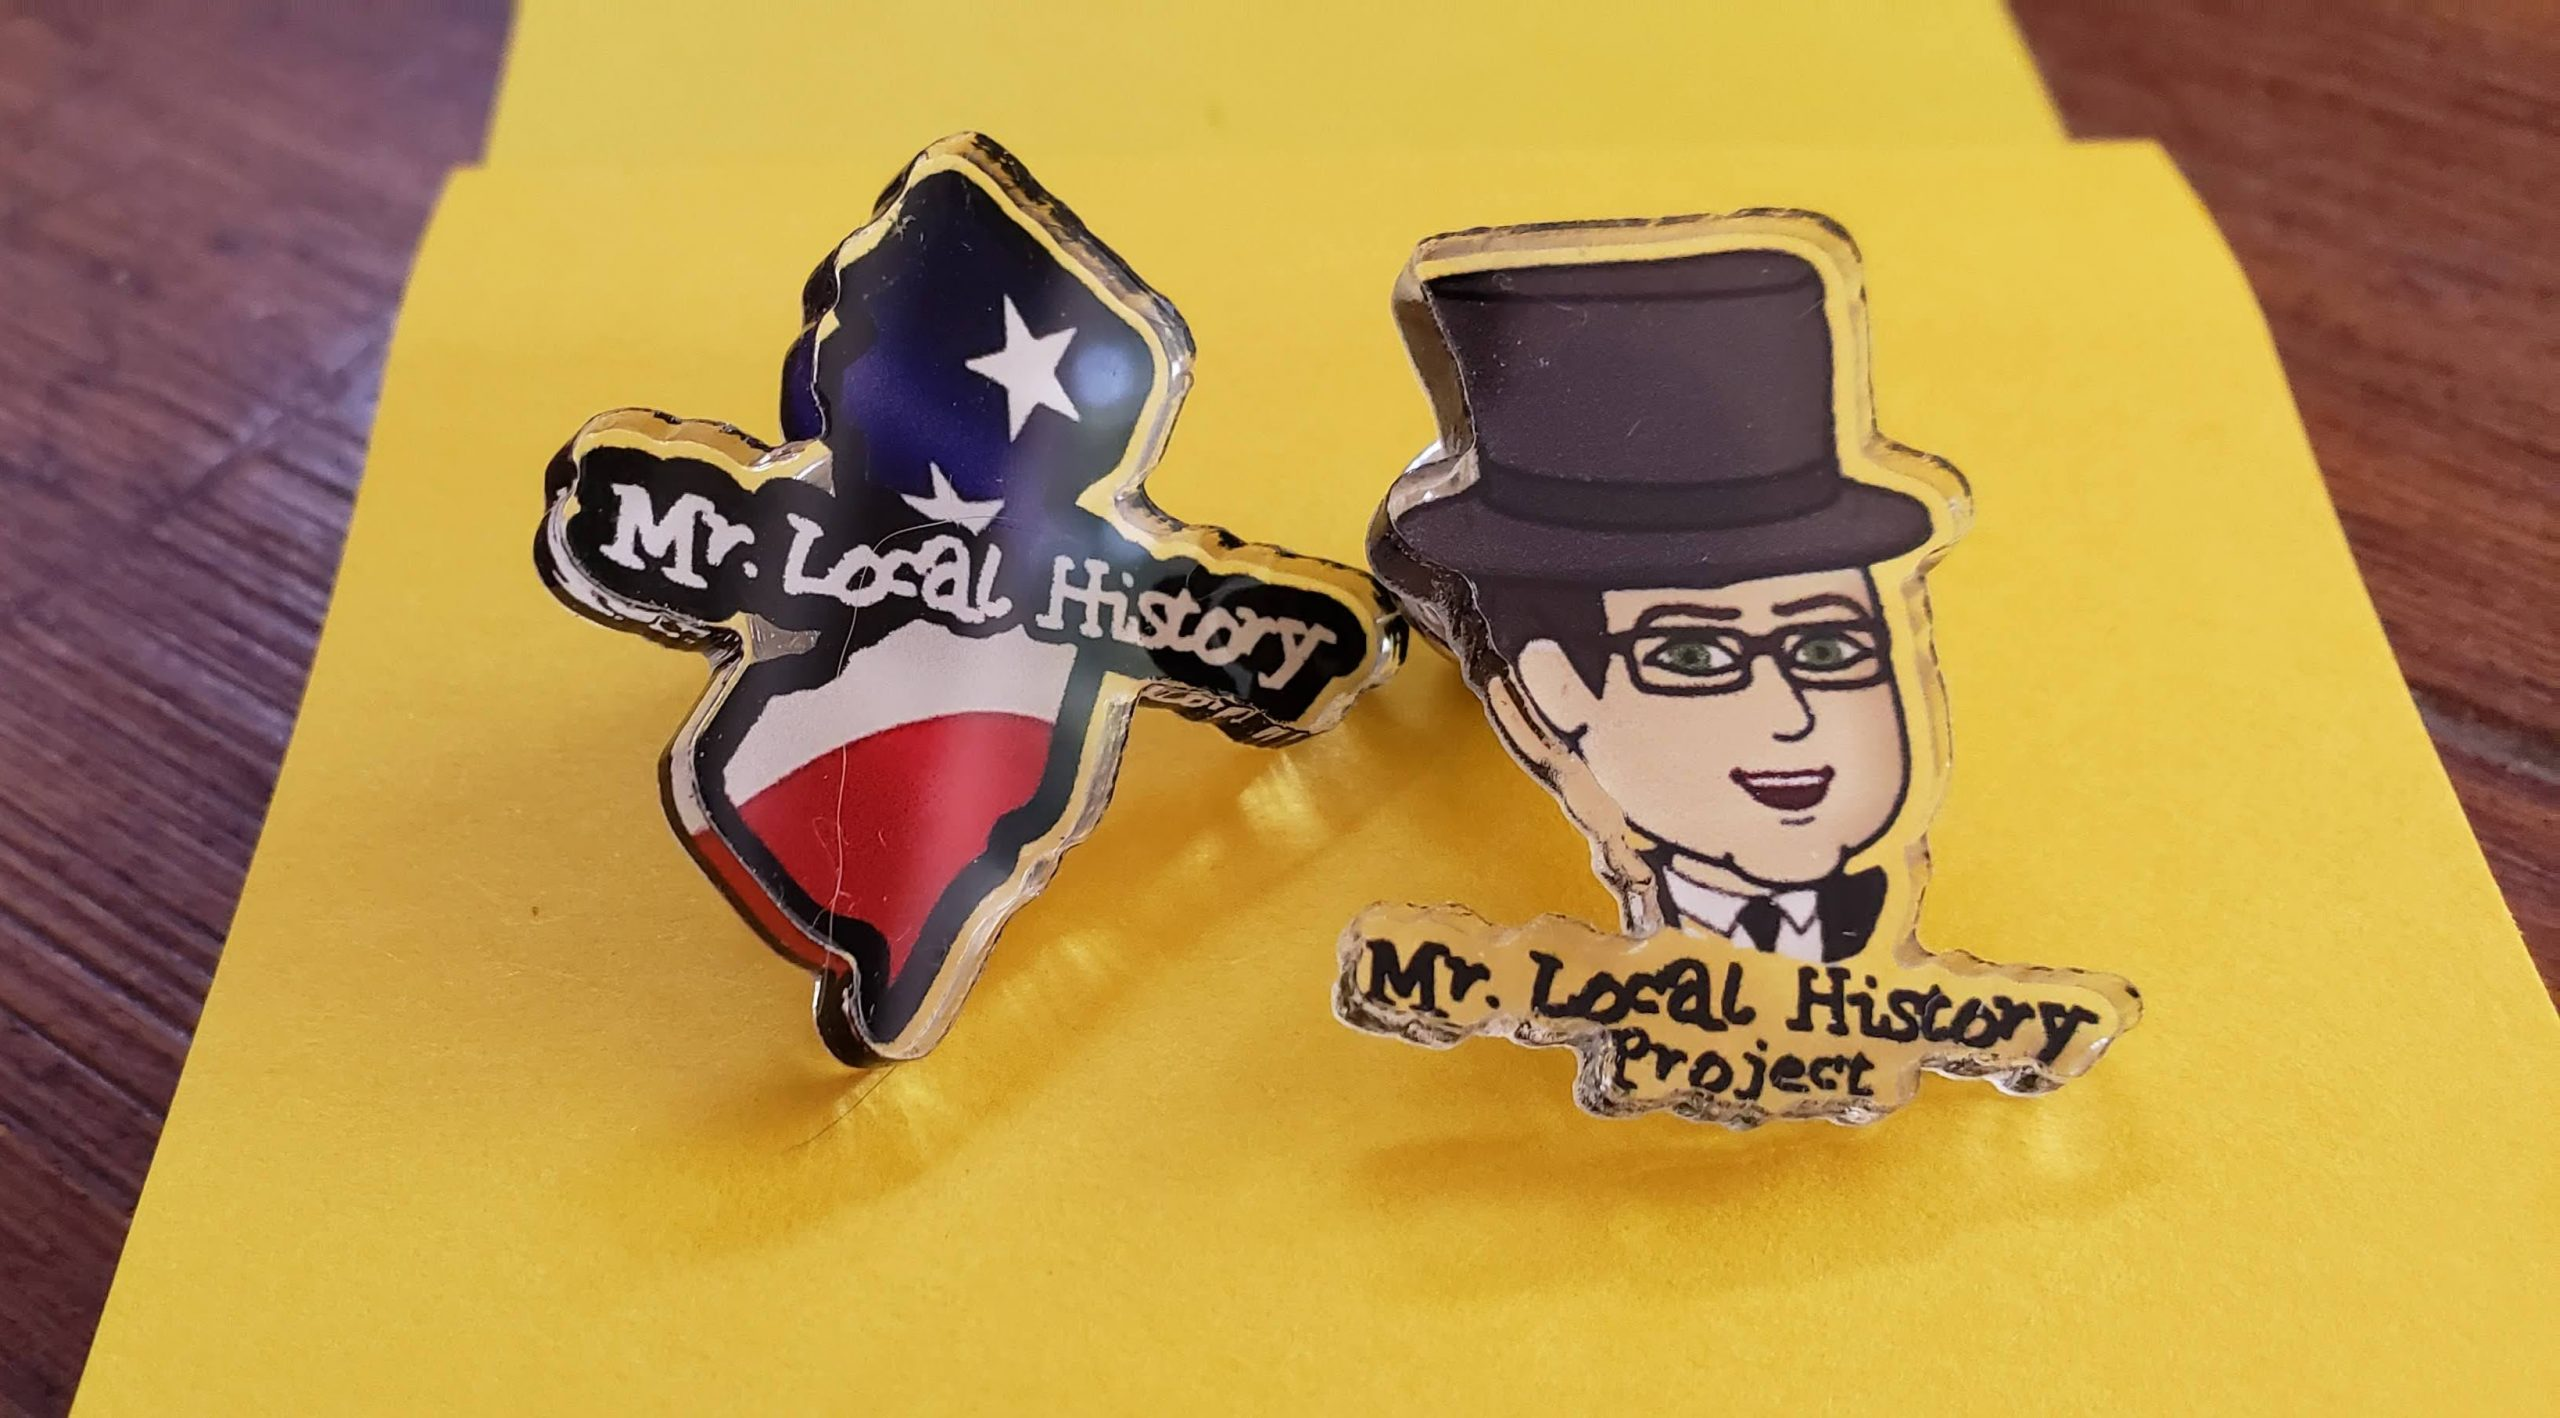 Limited Edition Mr. Local History Project Collectible Pin